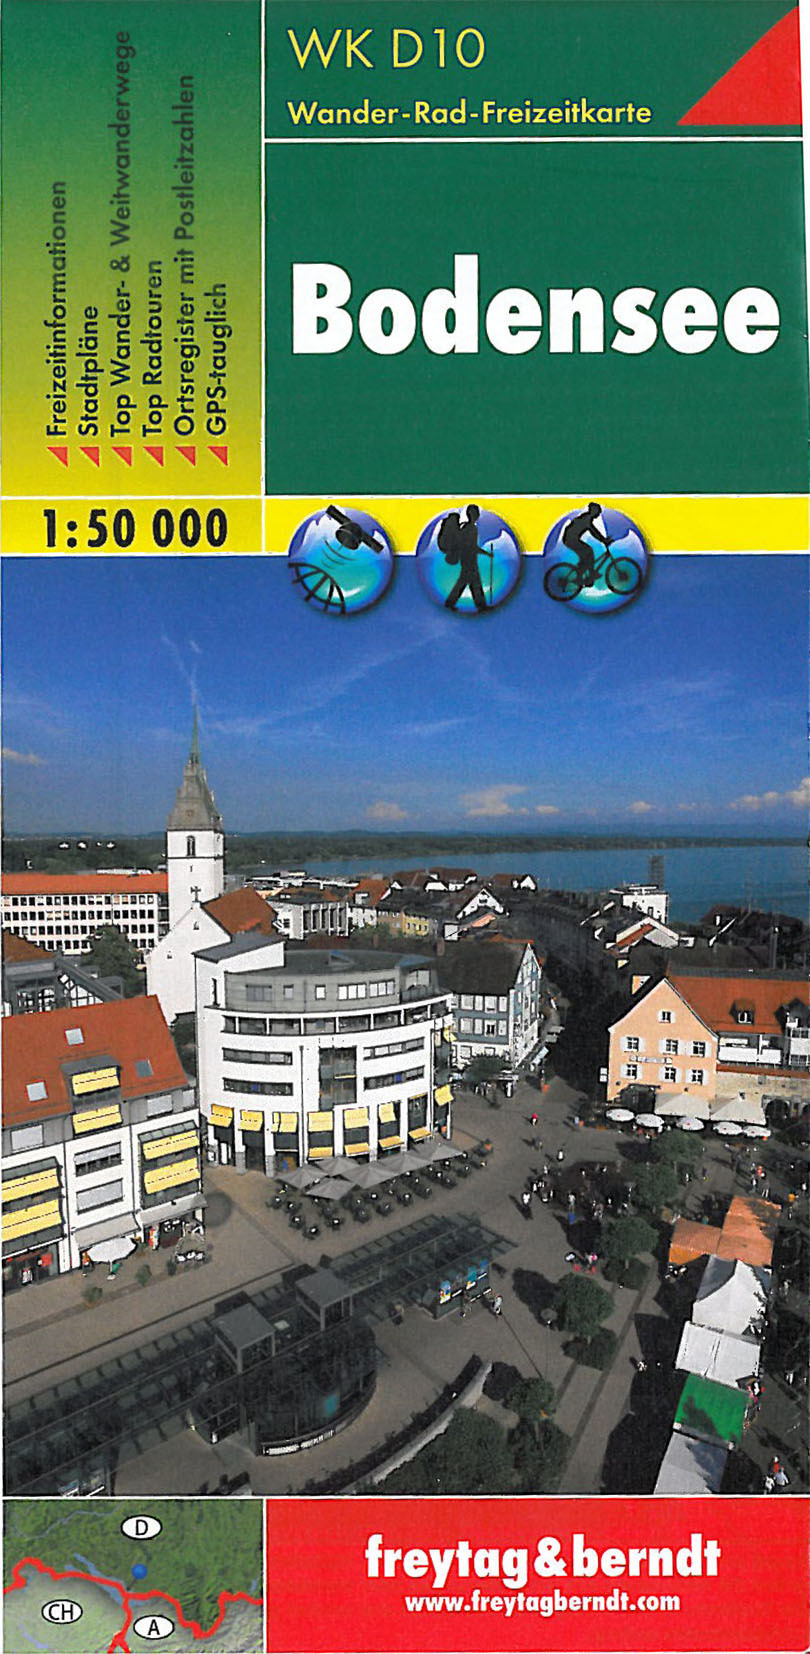 WK D10 BODENSEE